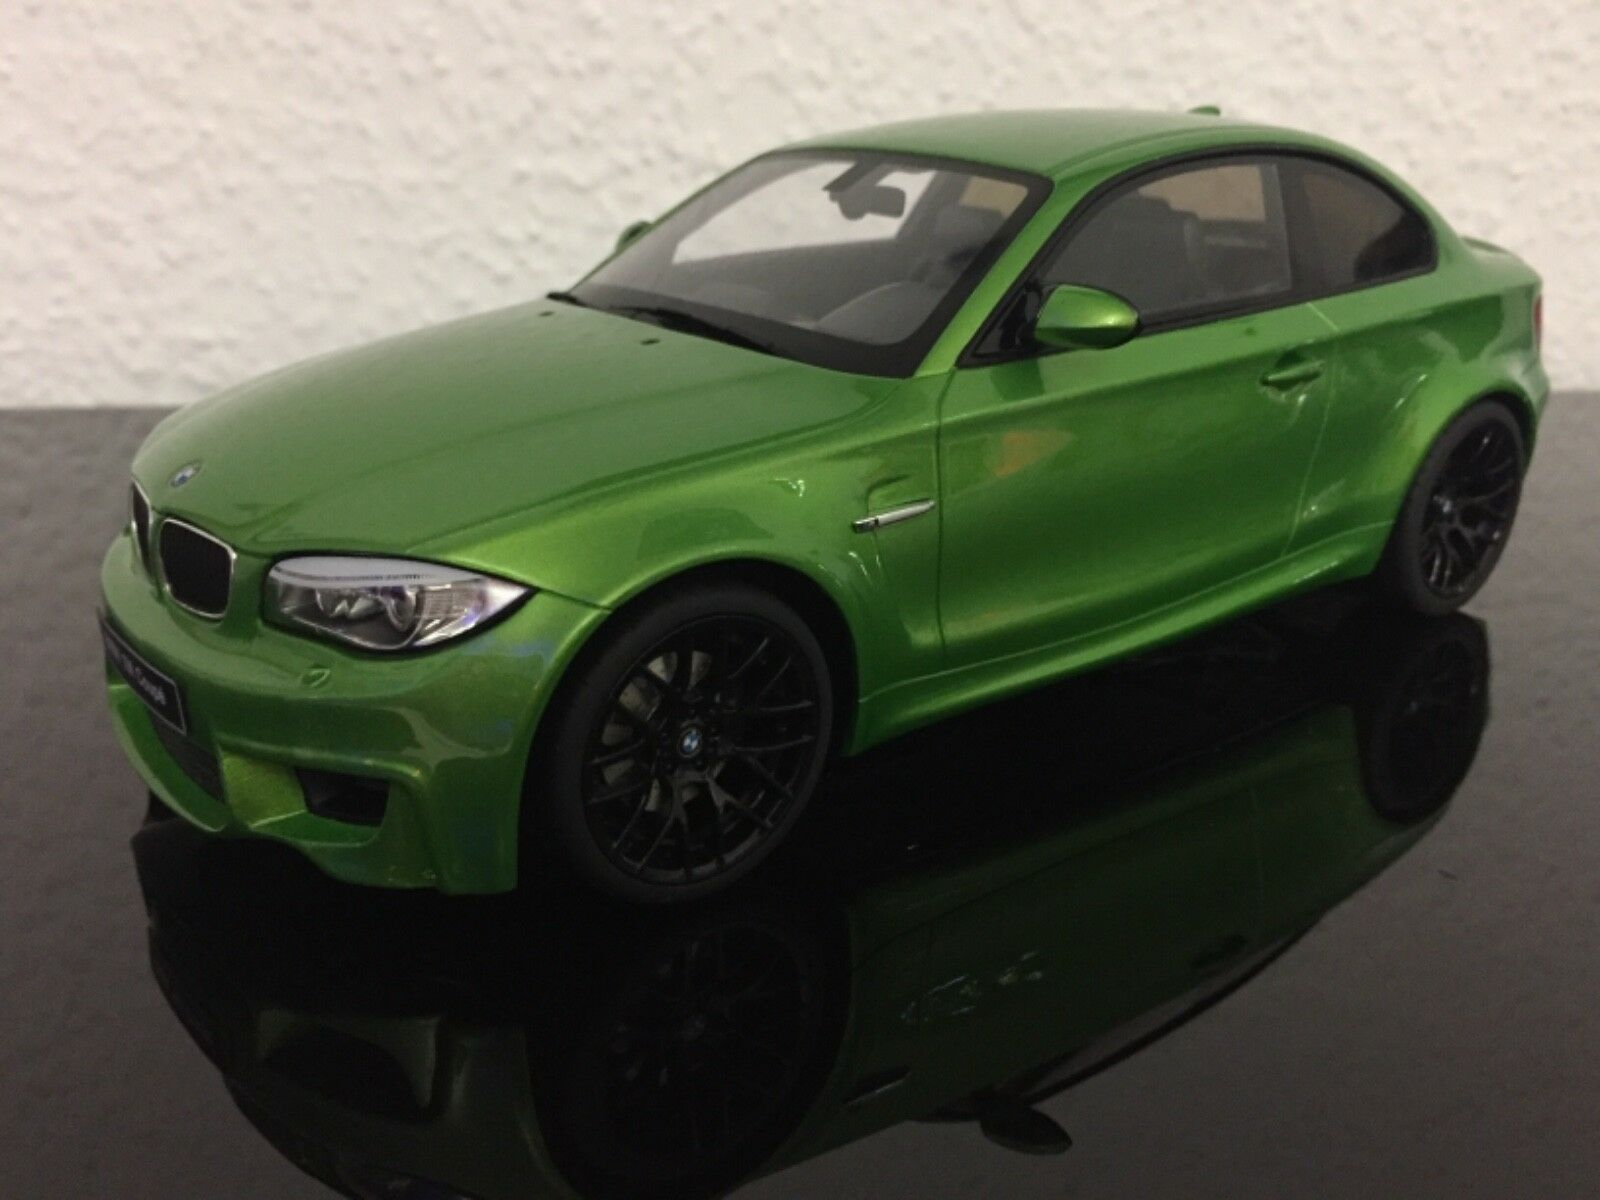 BMW 1er M 1M E82 Green Metallic ZM036 1 18